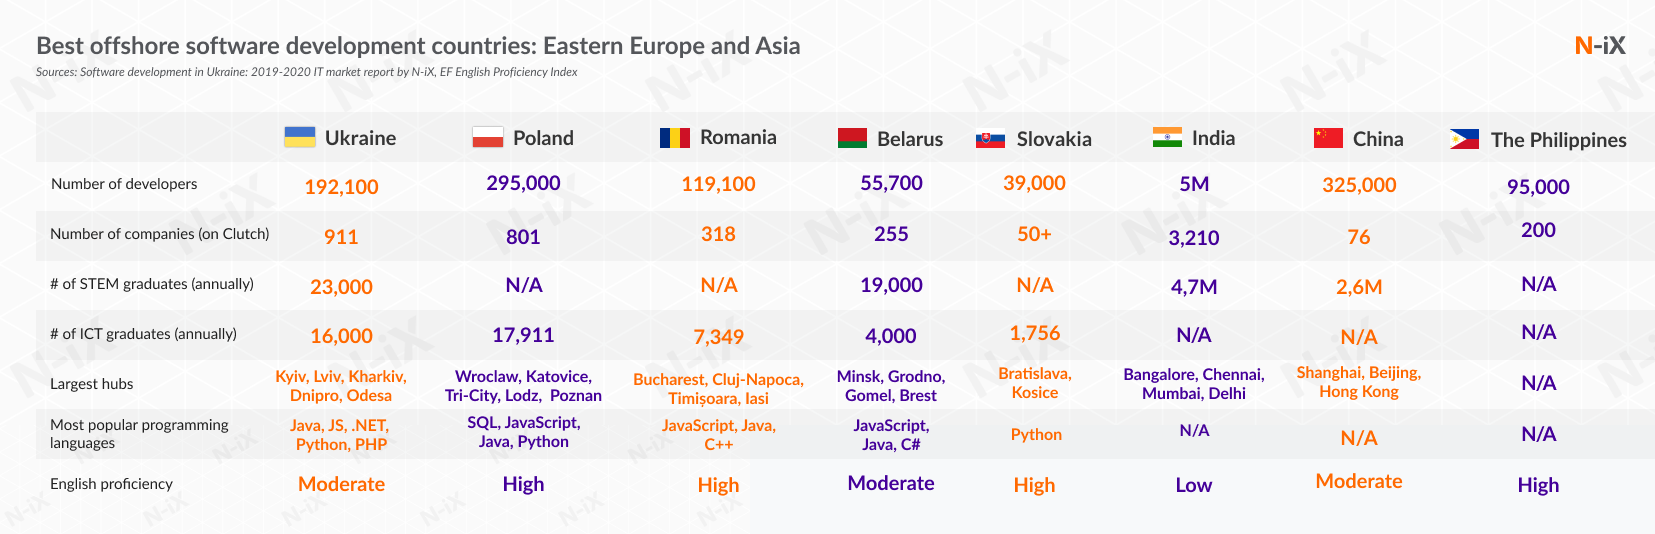 best offshore software development countries: Eastern Europe vs Asia